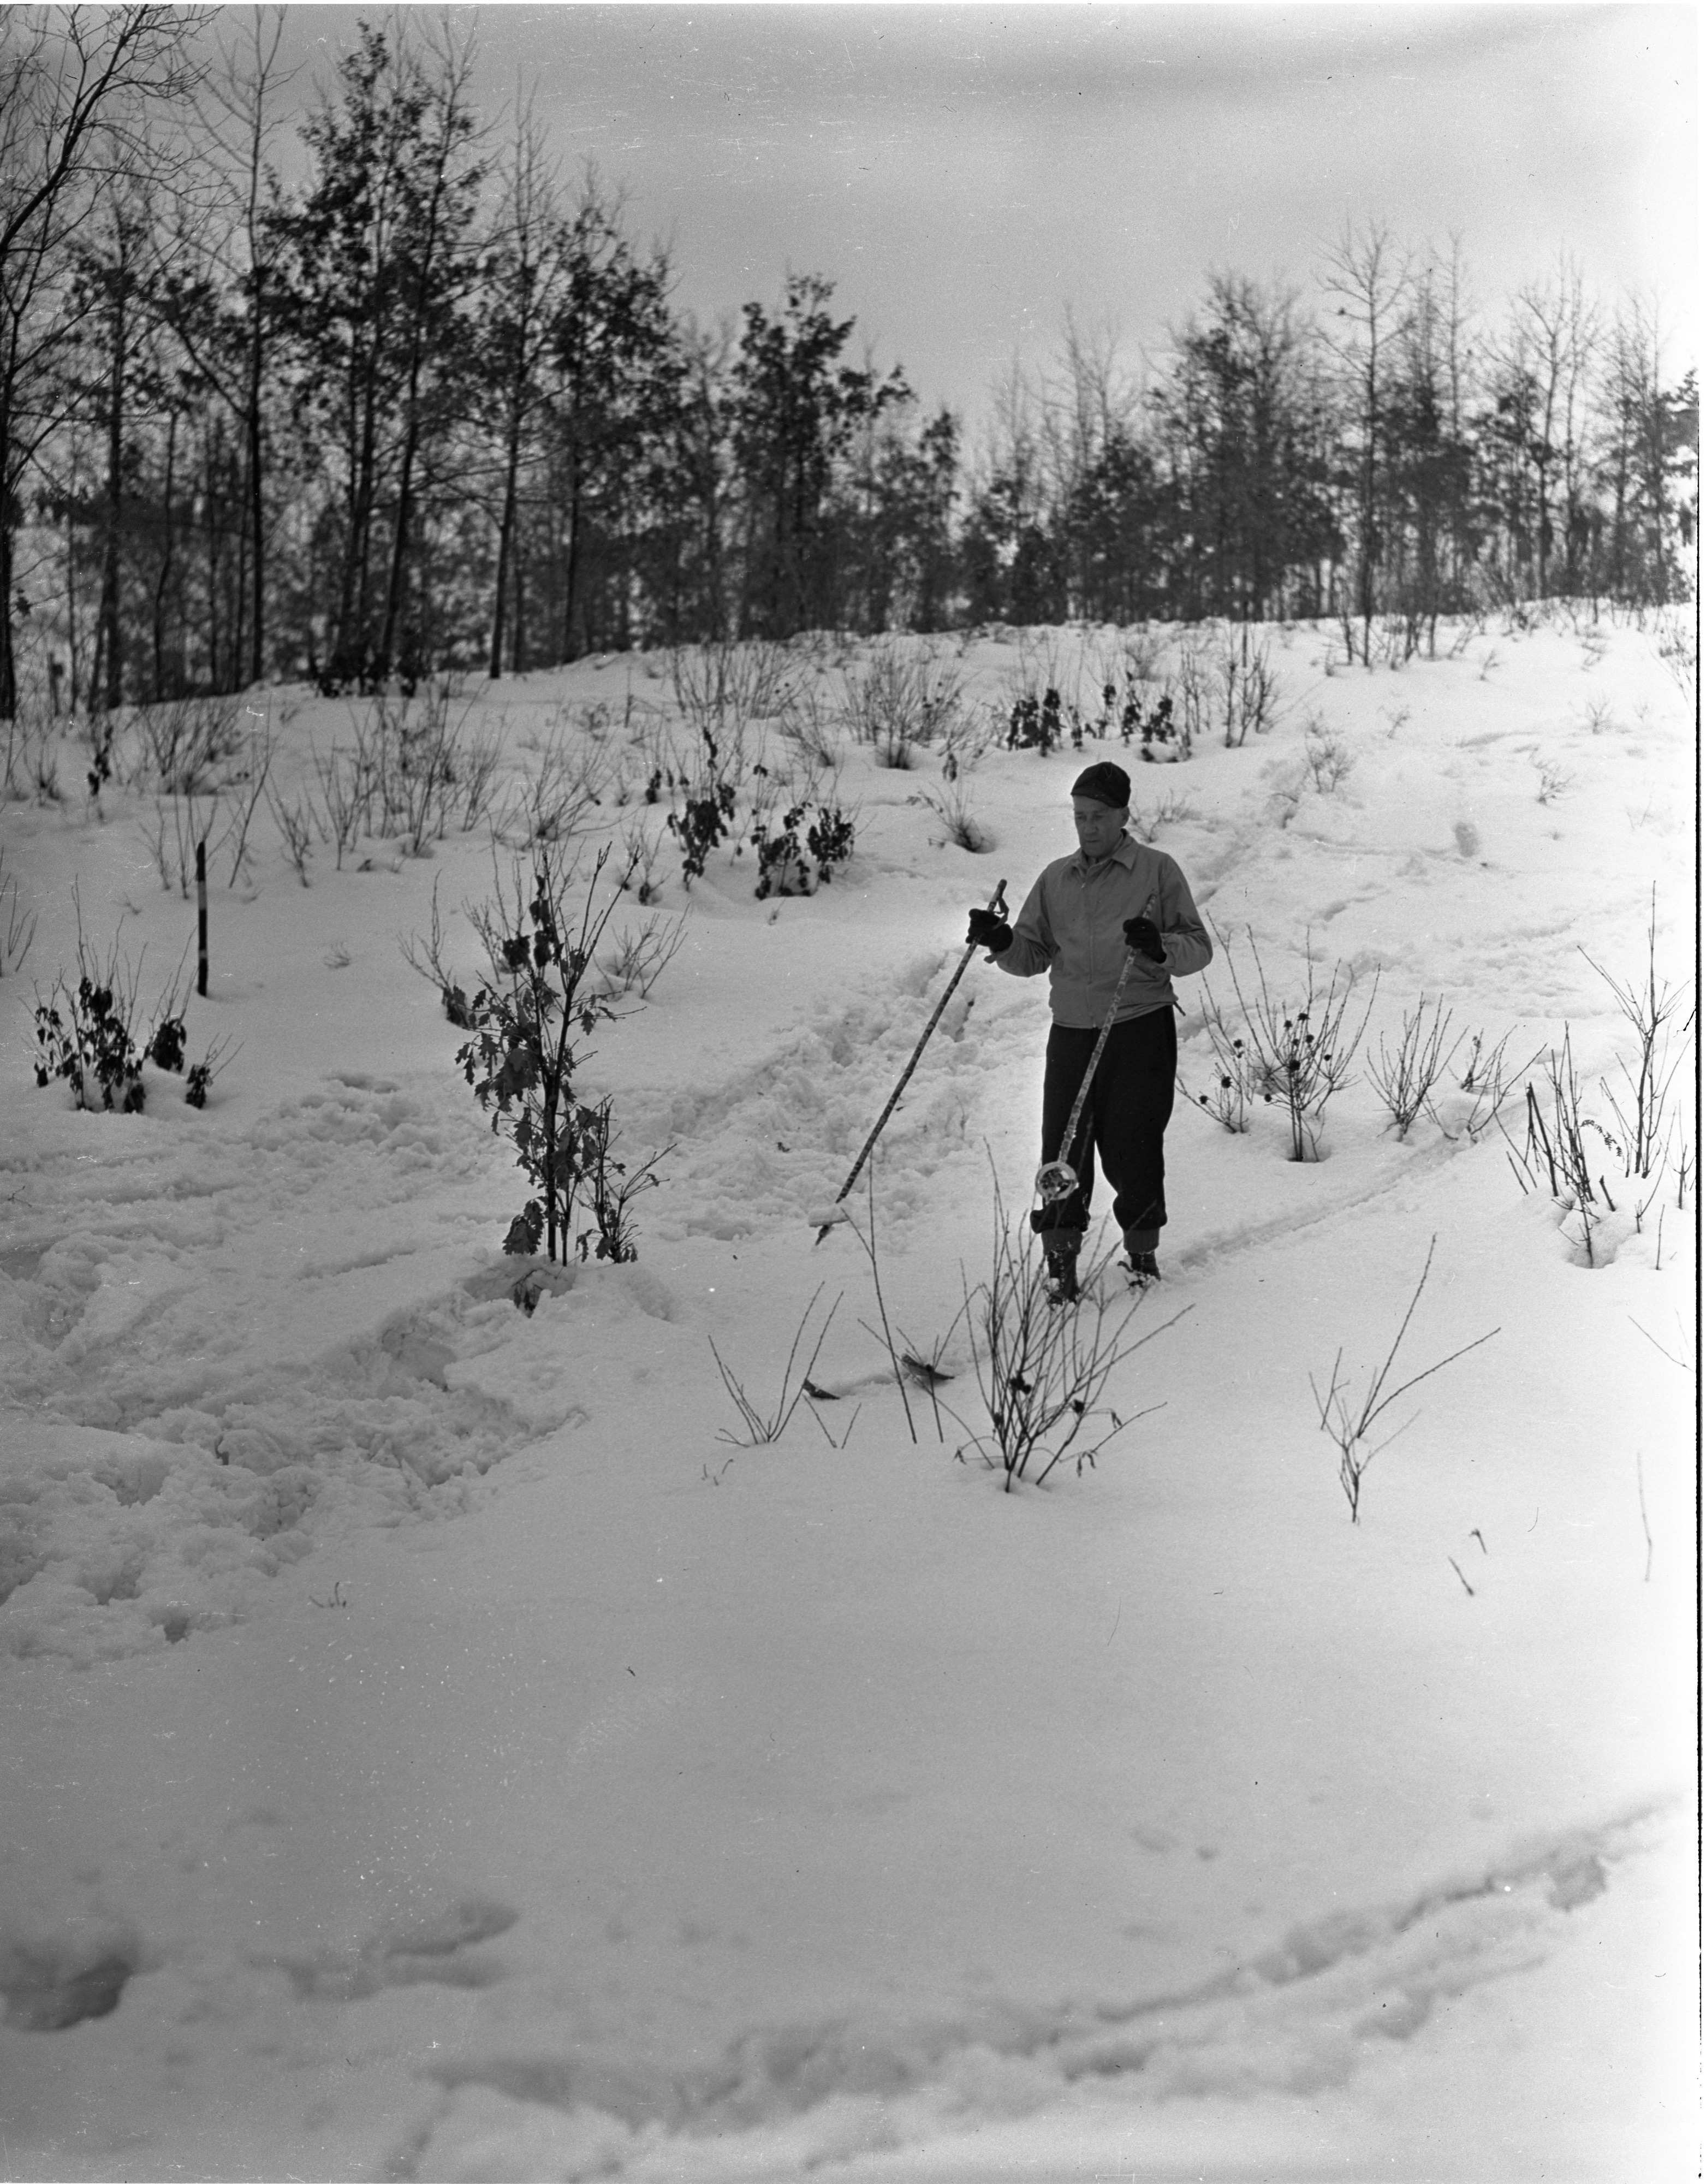 Skier At Grayling Winter Sports Park, January 1940 image